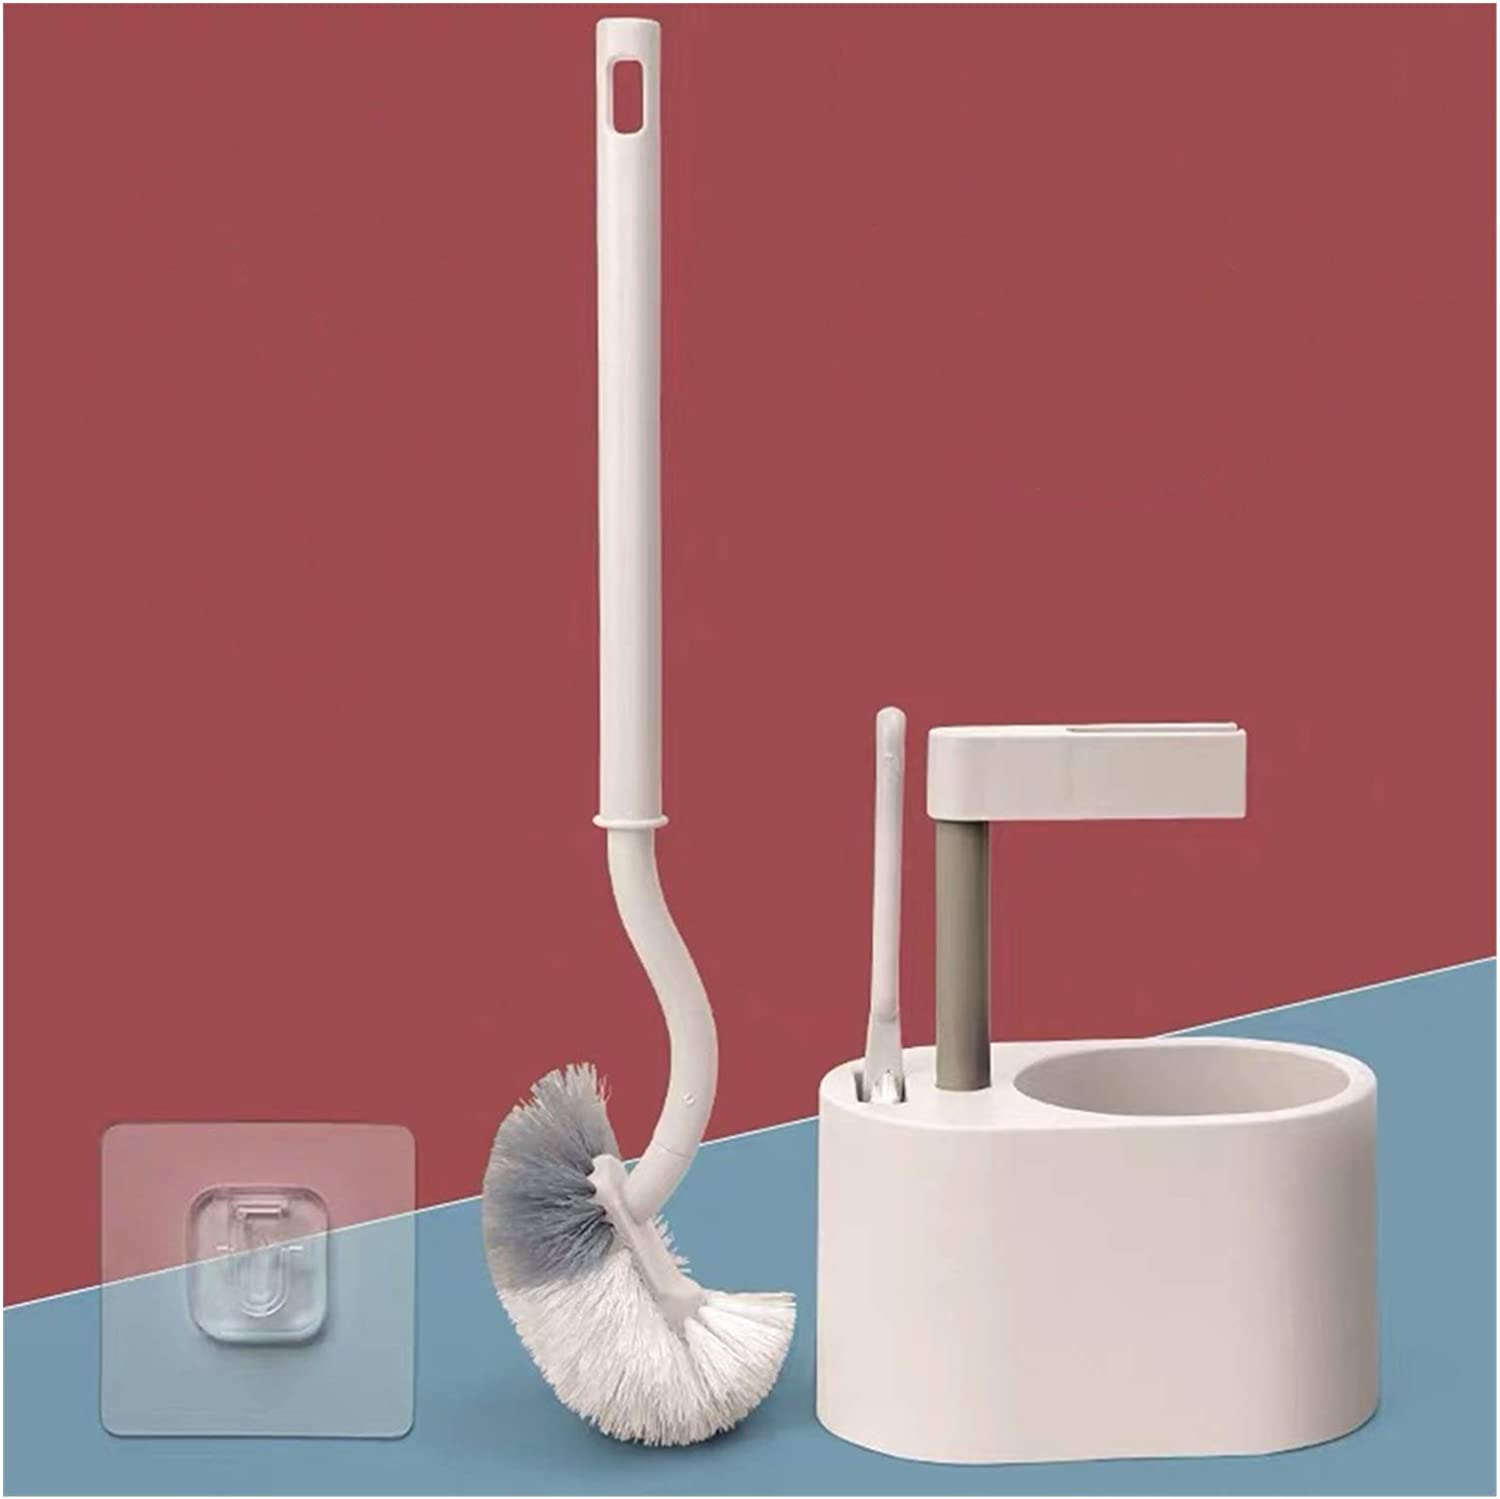 GLADMIN Toilet 2021 spring and summer new Brush Spasm price Dead Corner Plastic Curved Side Cleaning Br